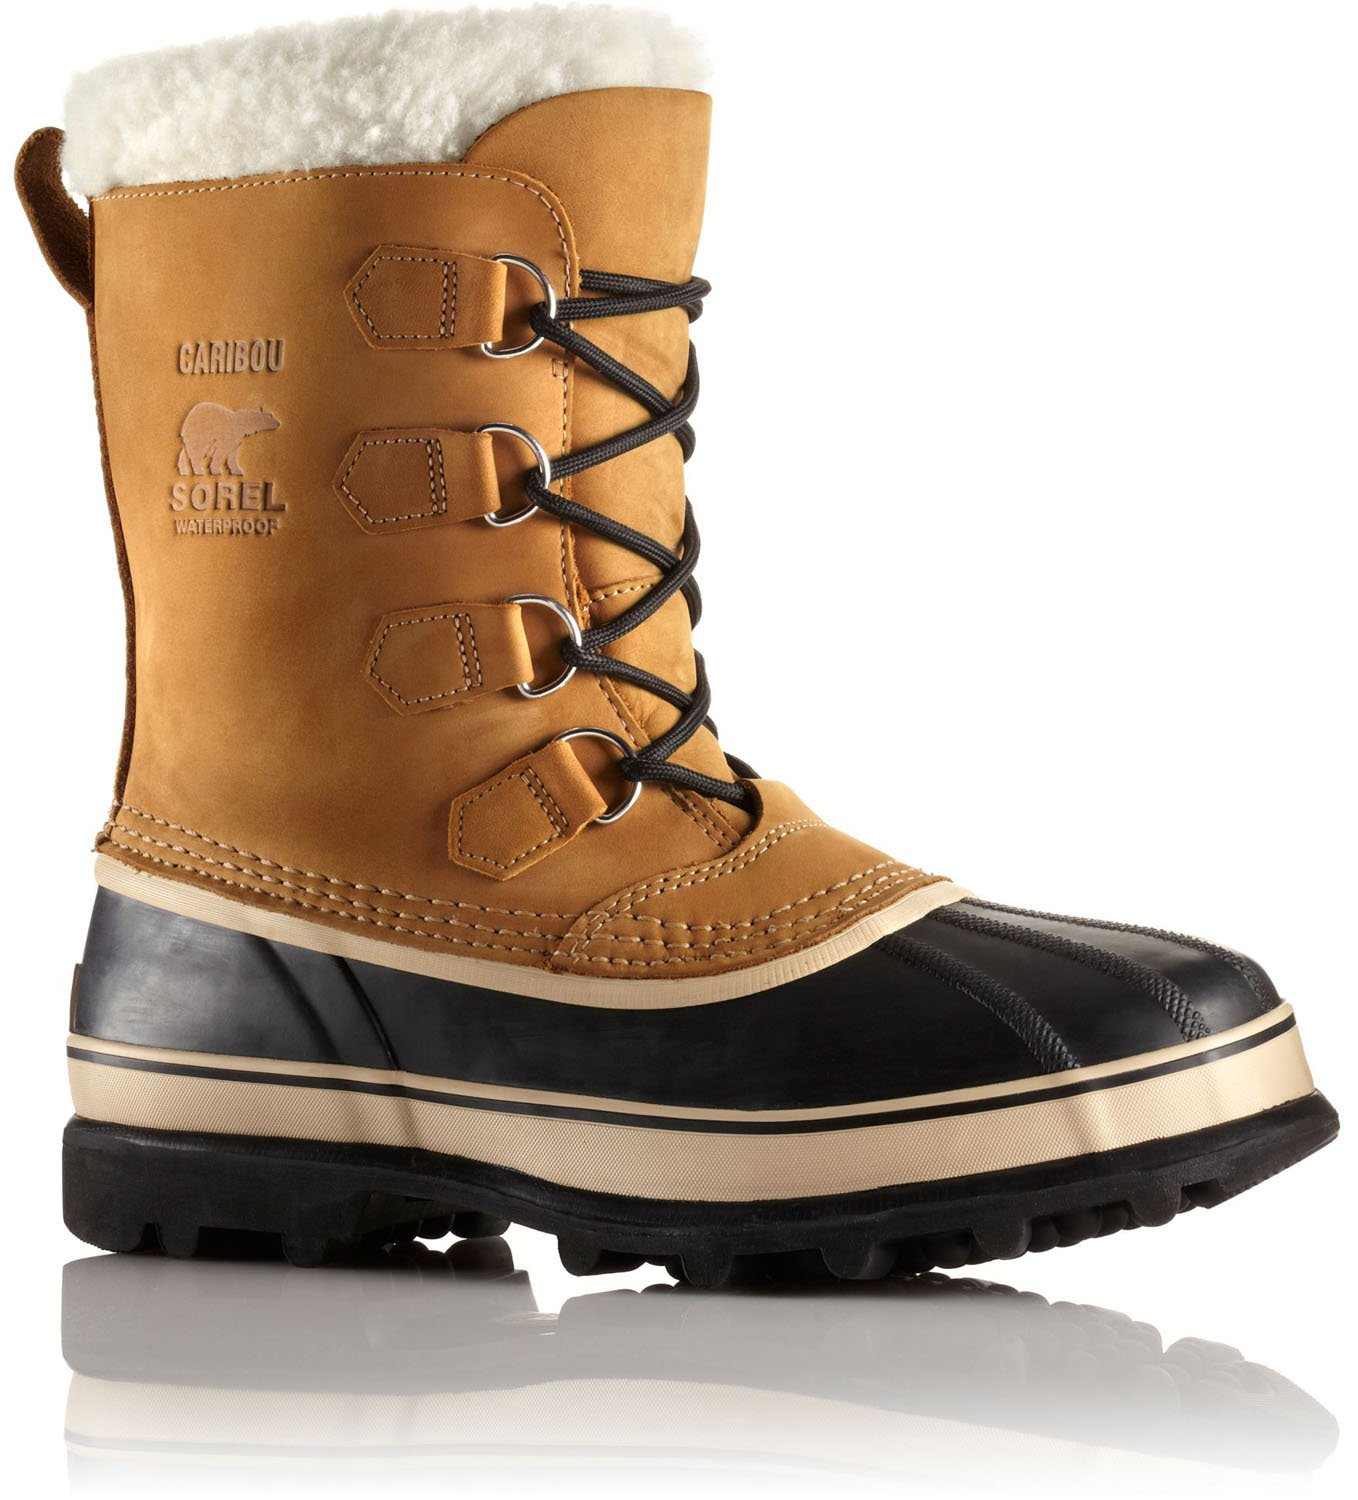 Sorel Mens Caribou Snow Boot Buff Size 14 by SOREL